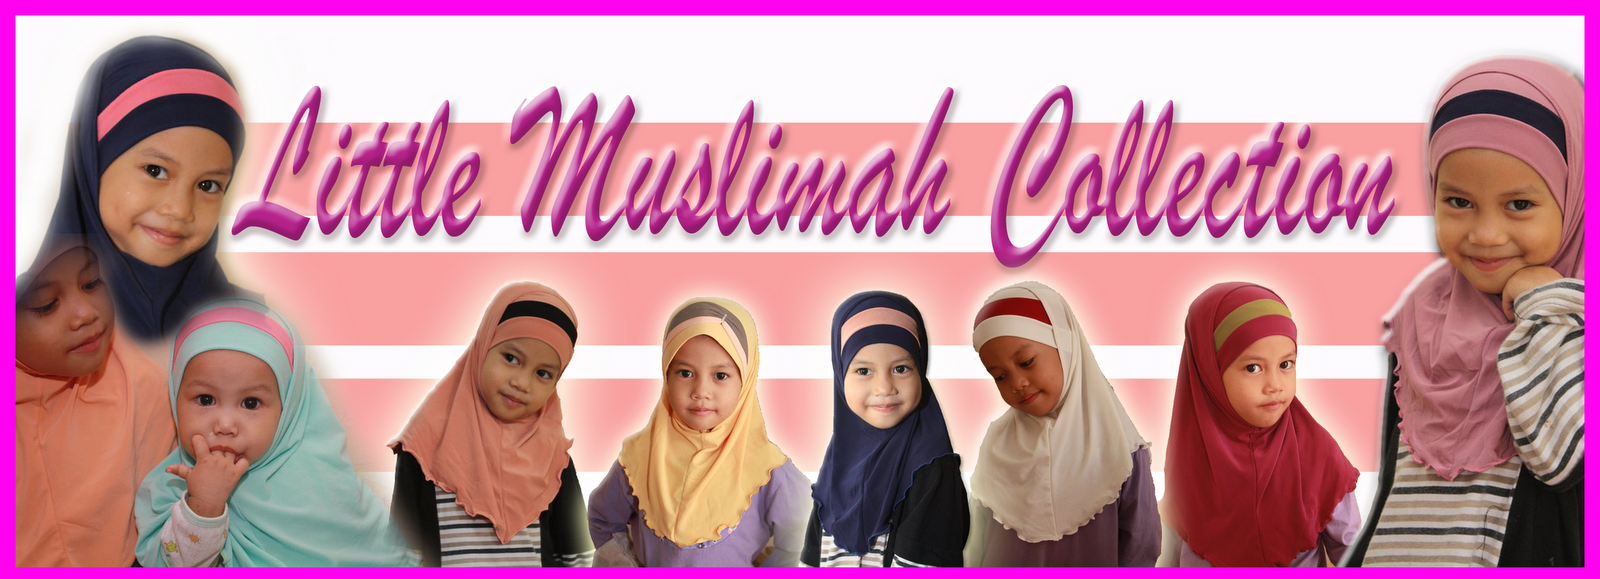 LITTLE MUSLIMAH COLLECTION